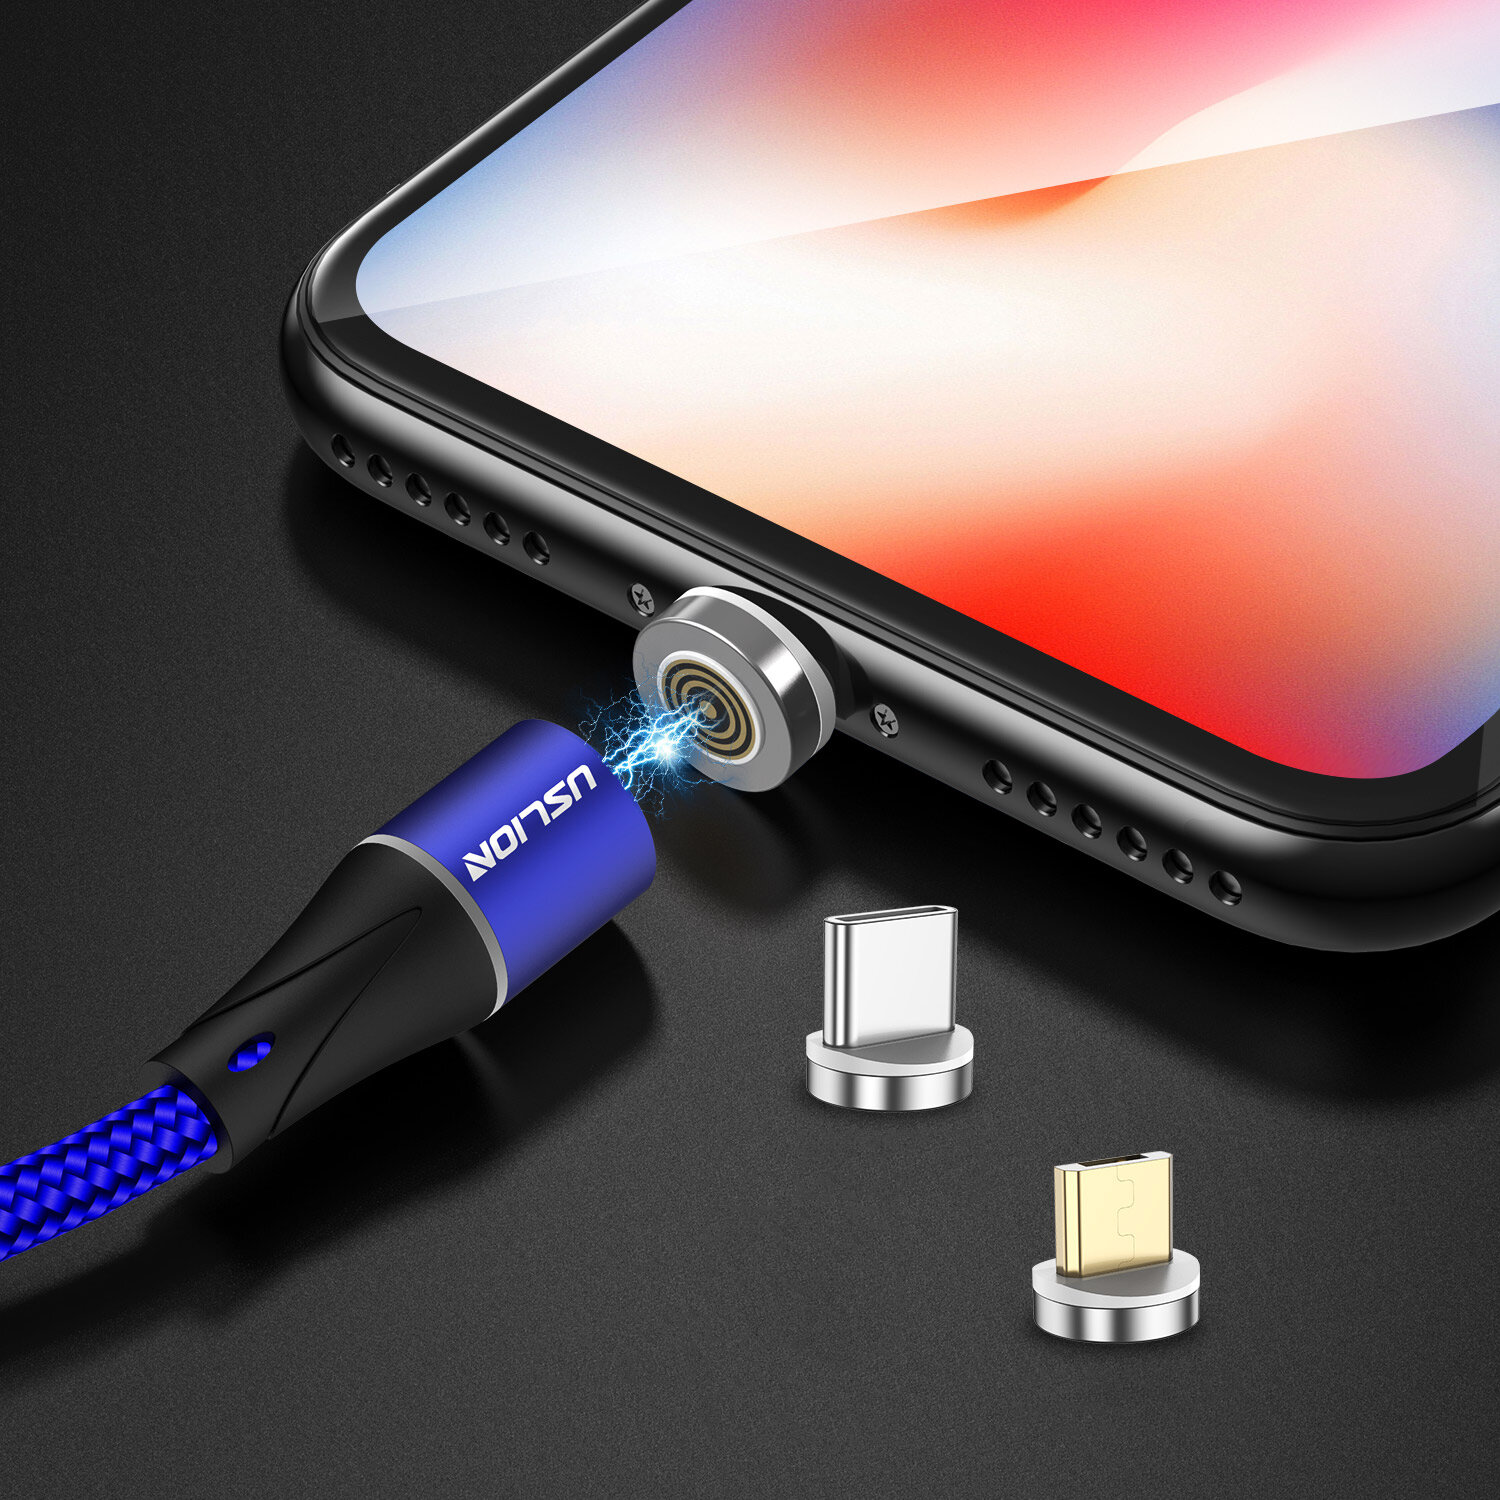 TOPK D-Line1 3A QC3.0 Voltage Current Display Type C Fast Charging Data Cable 1M For Phone Tablet - 3